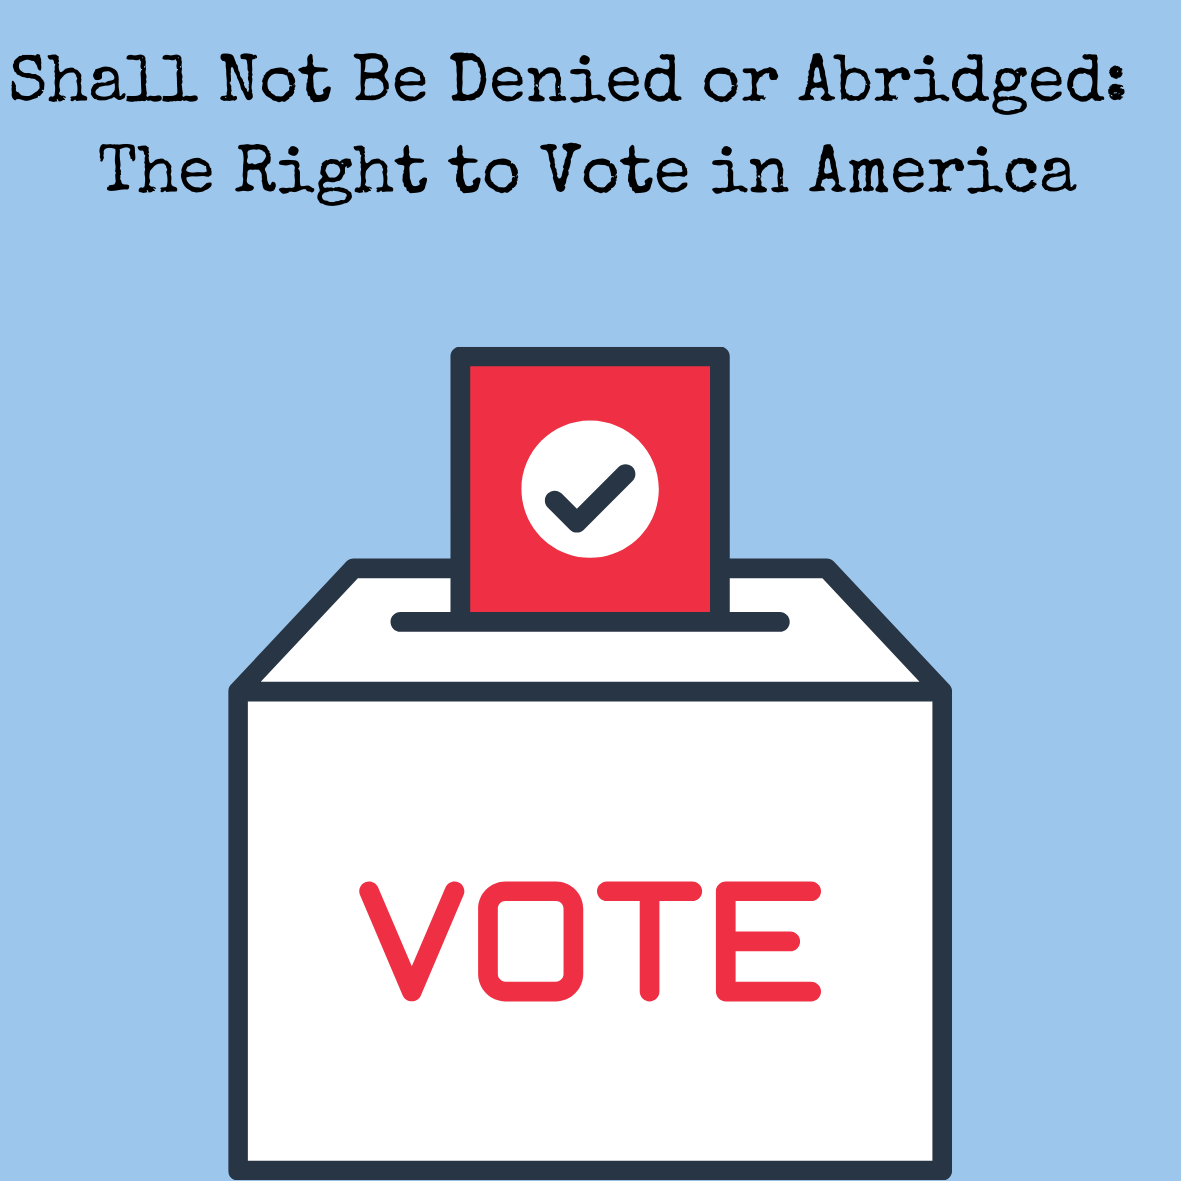 Shall Not Be Denied or Abridged- The History of the Right to Vote in America